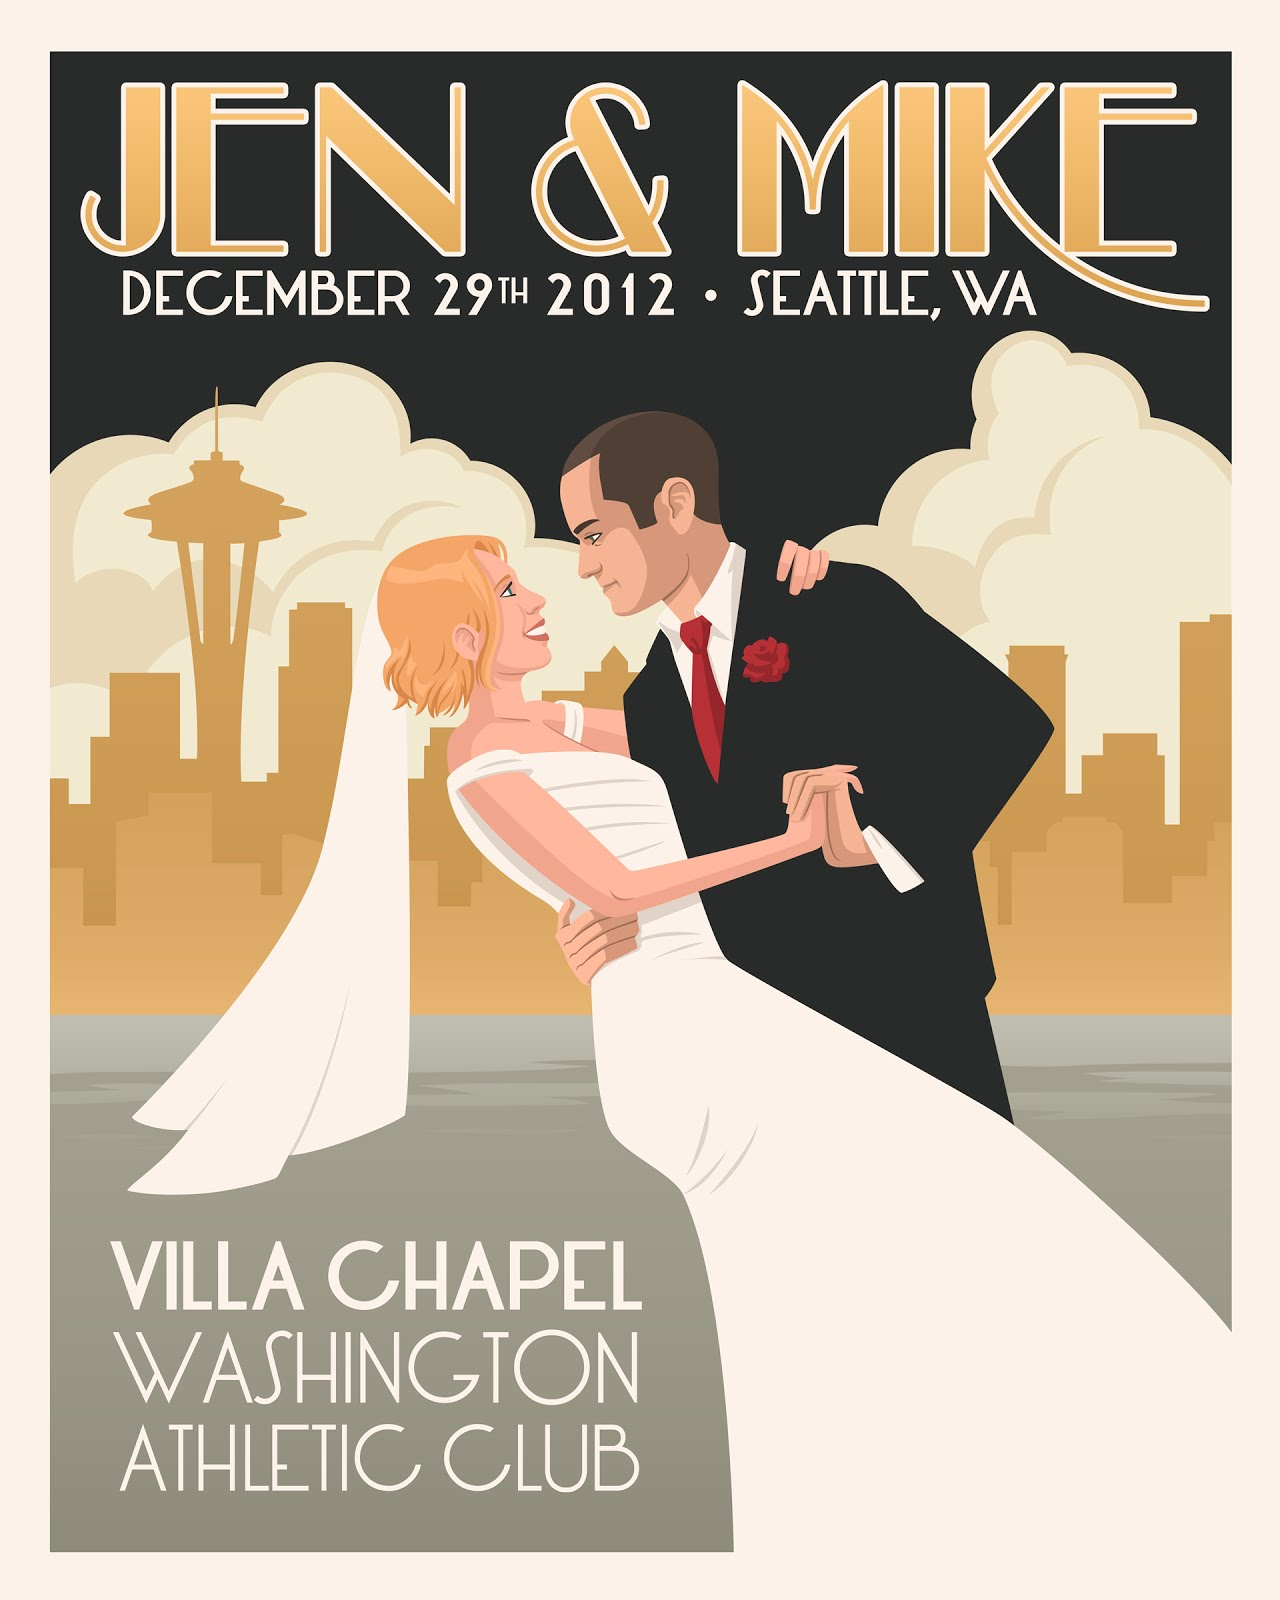 The Art Of M. S. Corley: Jen & Mike Wedding Poster